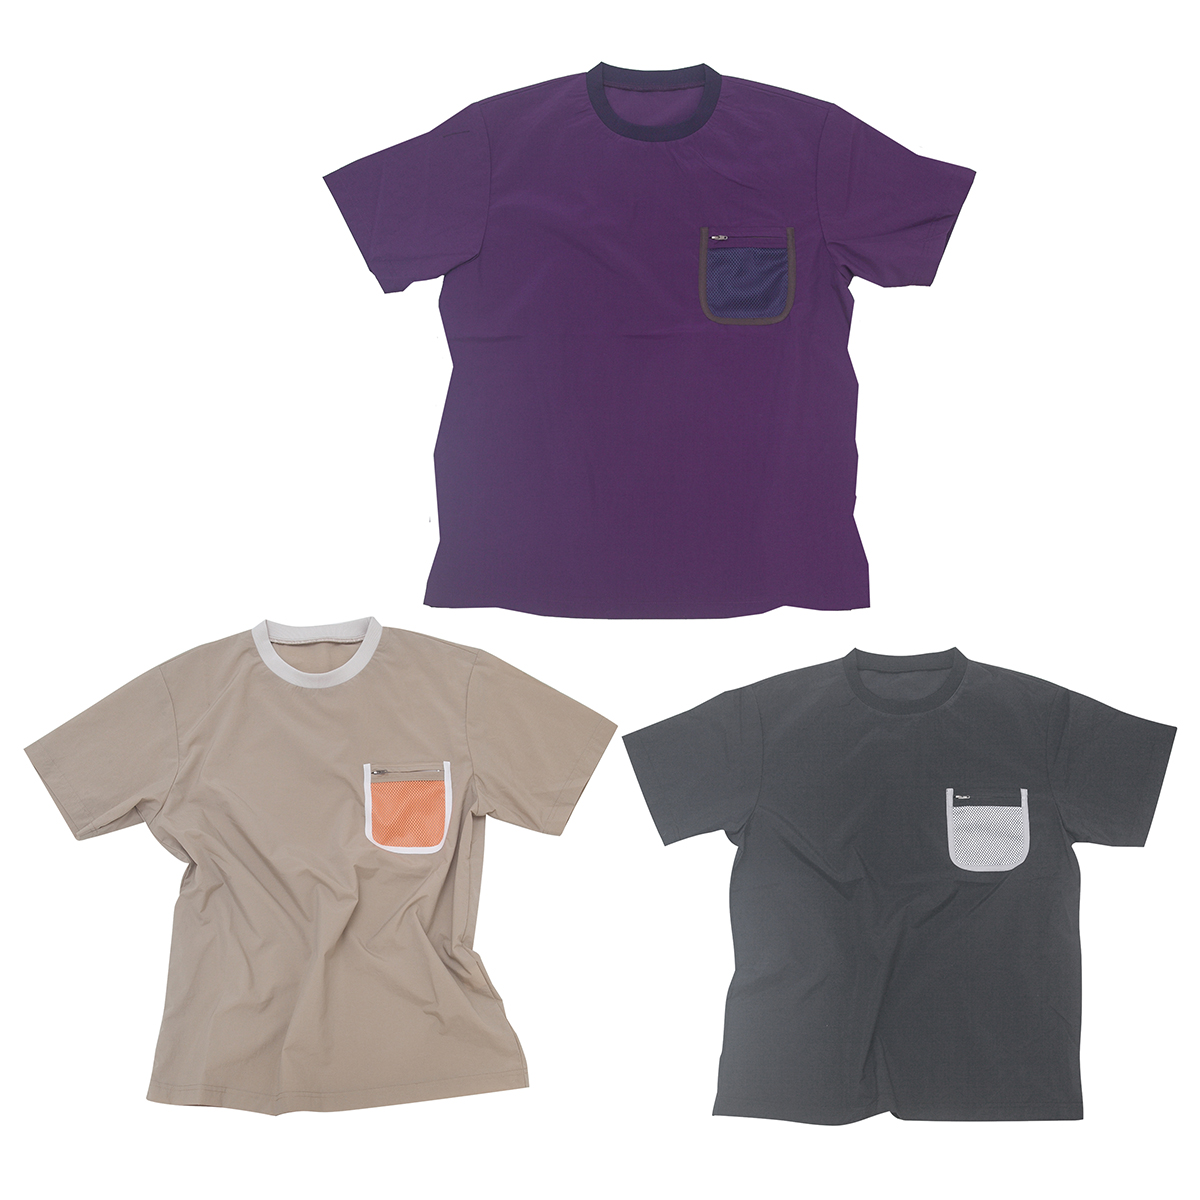 AWESOME TEE オーサム T シャツ Number : s20-so-11 Fabric : Nylon 100% Size : S, M, L, XL Color:Purple, Beige, Black Price : ¥8,000